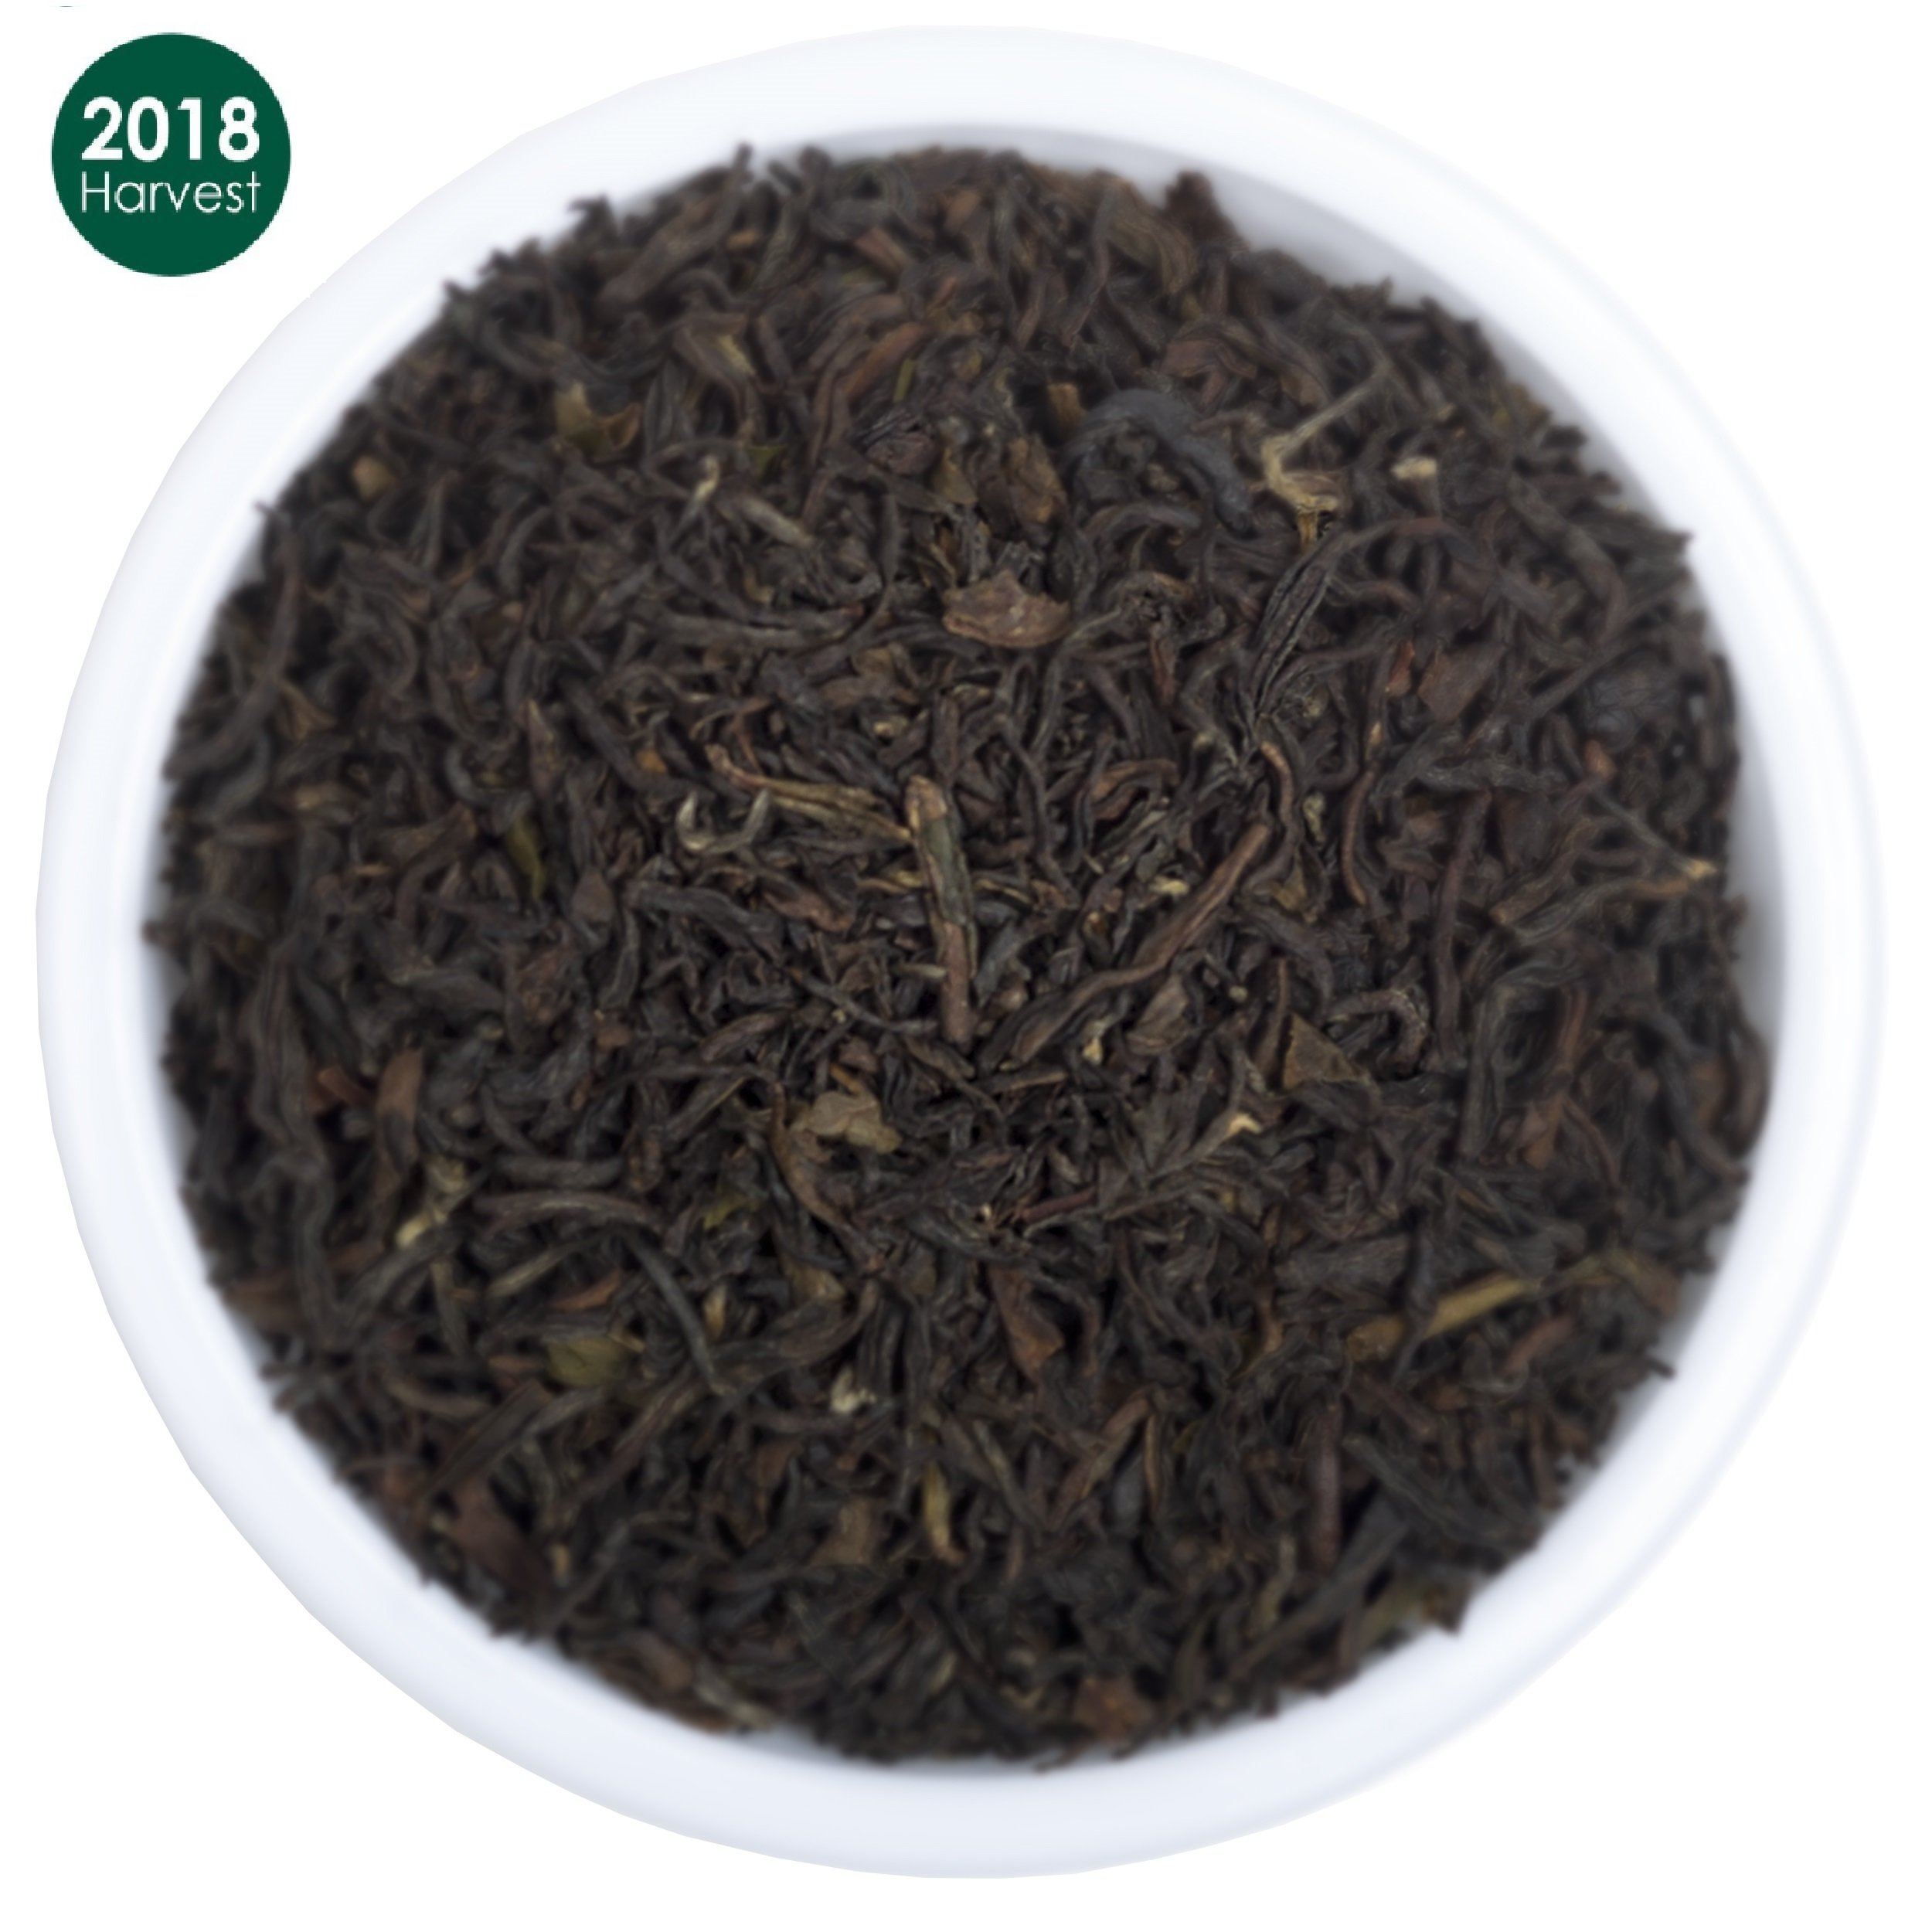 Organic Black Loose Leaf Darjeeling Tea, 2018 Prime Second Flush Tea with Powerful Antioxidants; Brews the Perfect Probiotic Kombucha- No Fillers and Gluten Free- Makes 50 Cups (3.53 ounces)